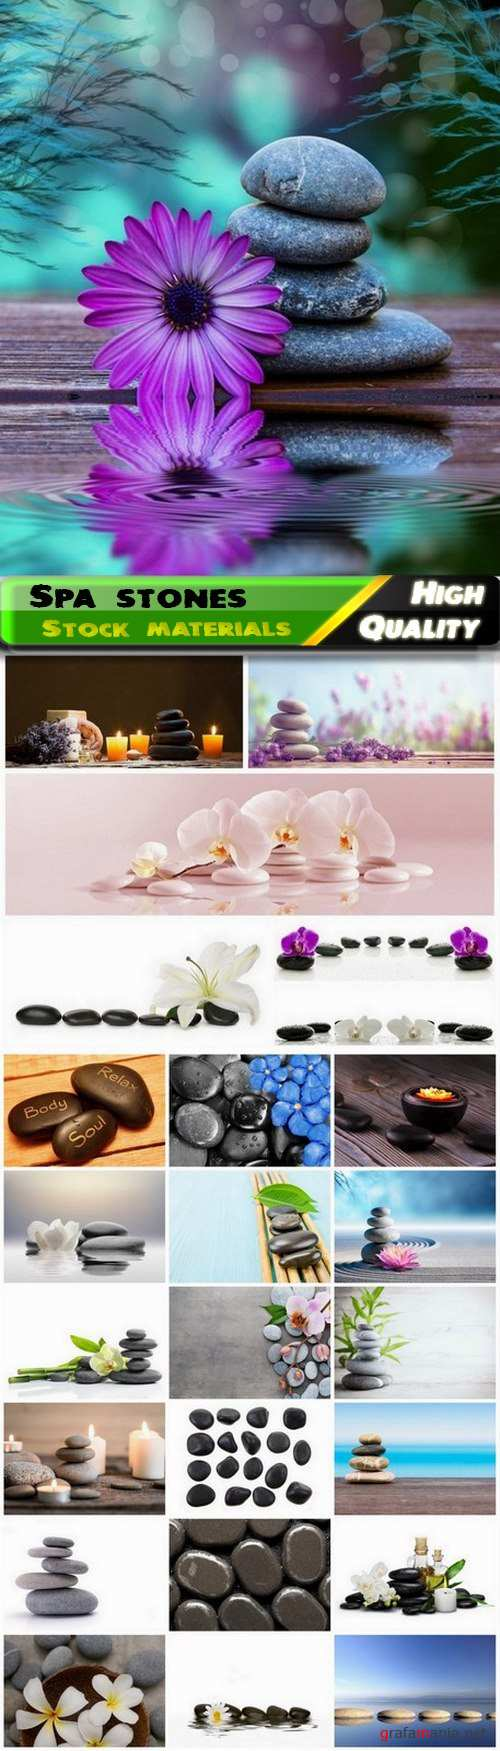 Black smooth spa stones with flower for relax massage 25 HQ Jpg